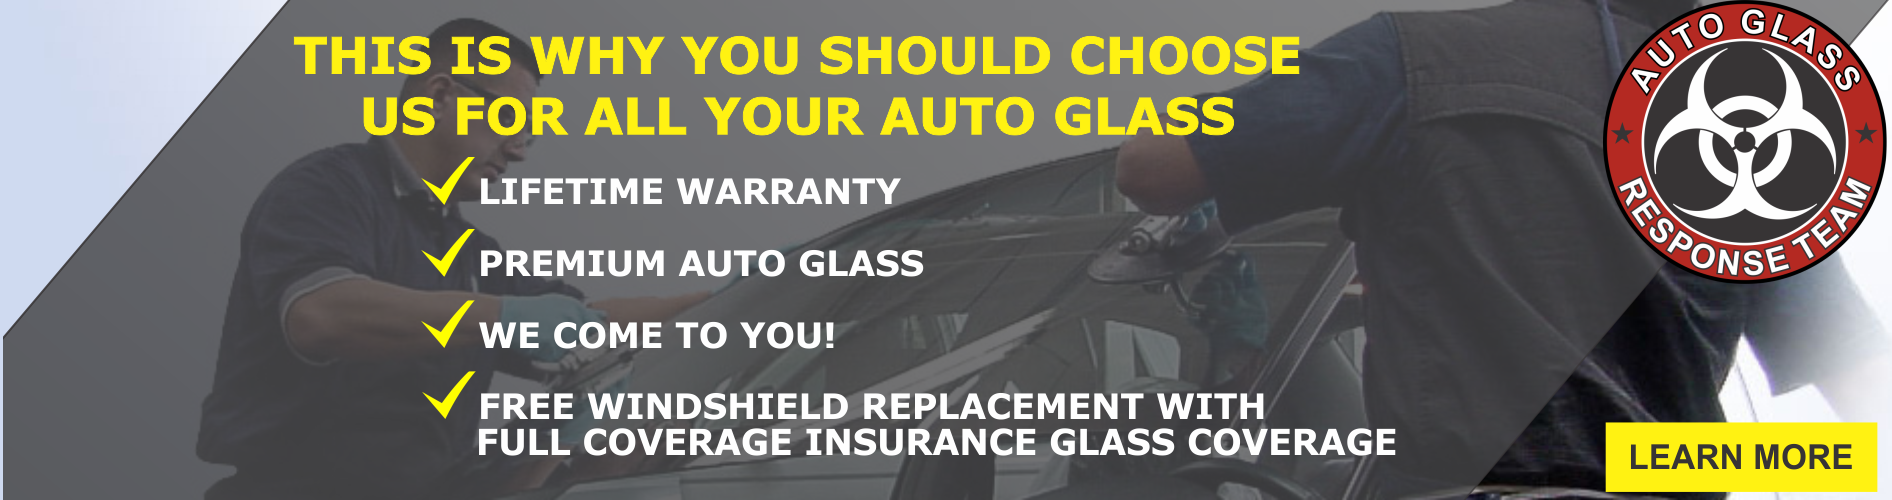 Windshield Replacement Come To You >> Auto Glass Repair Windshield Replacement Service Auto